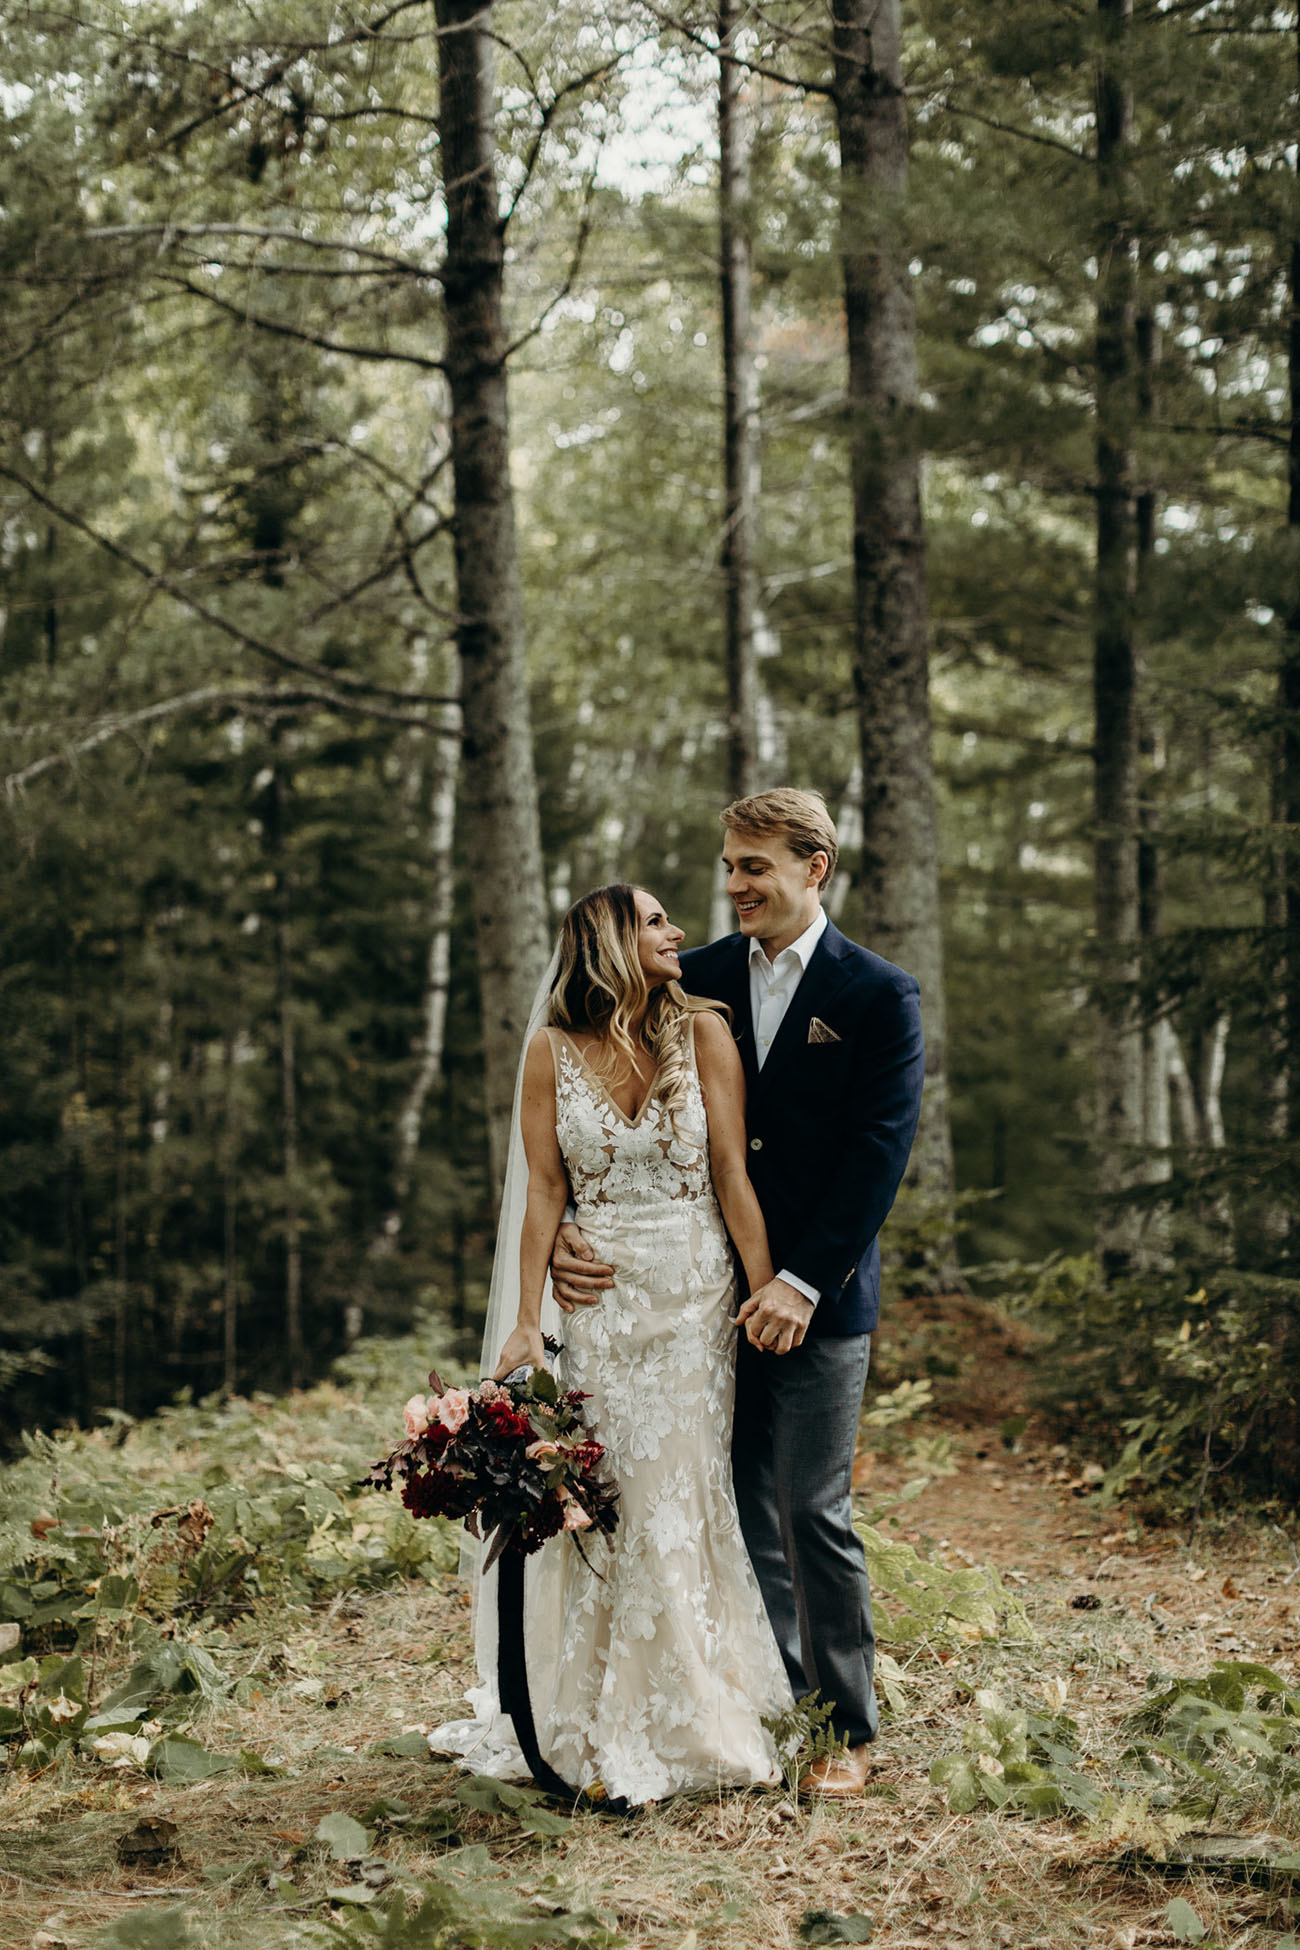 The bride was wearing a lace applique sleeveless fitting wedding dress with a deep V neckline and a veil, the groom was rocking grey pants, a navy blazer and brown shoes